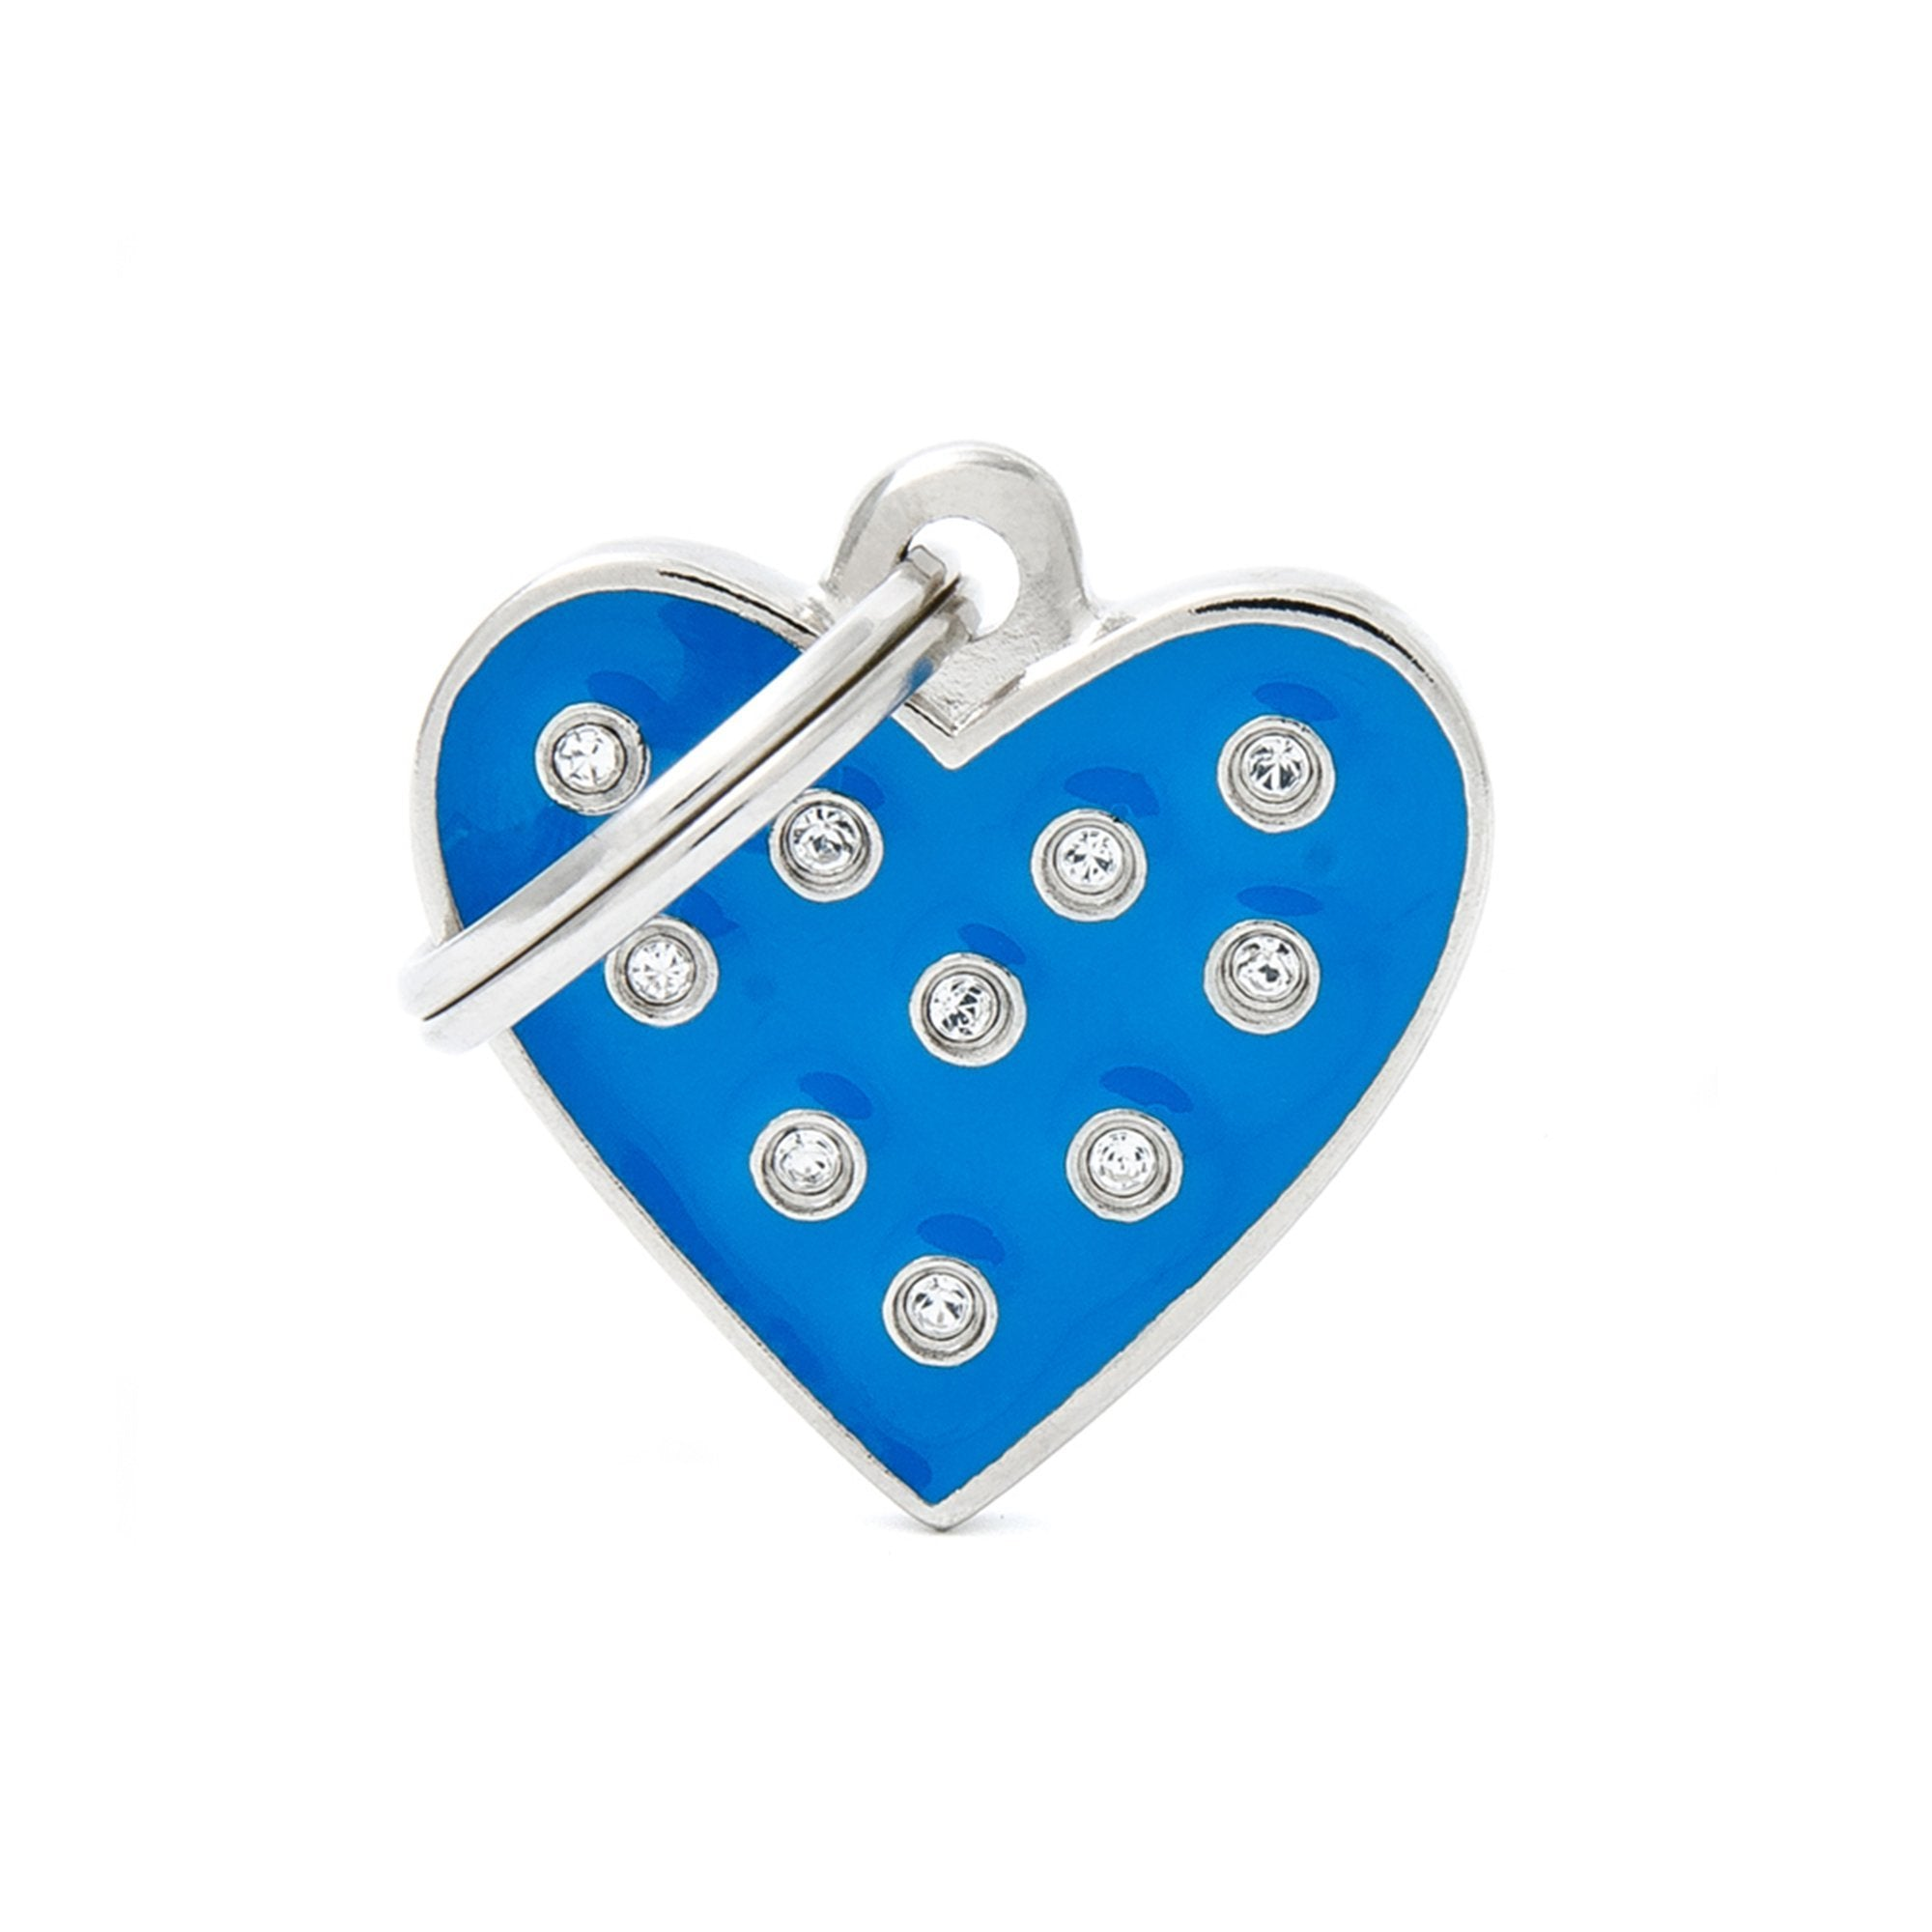 My Family Chic Blue Heart PET I.D TAG